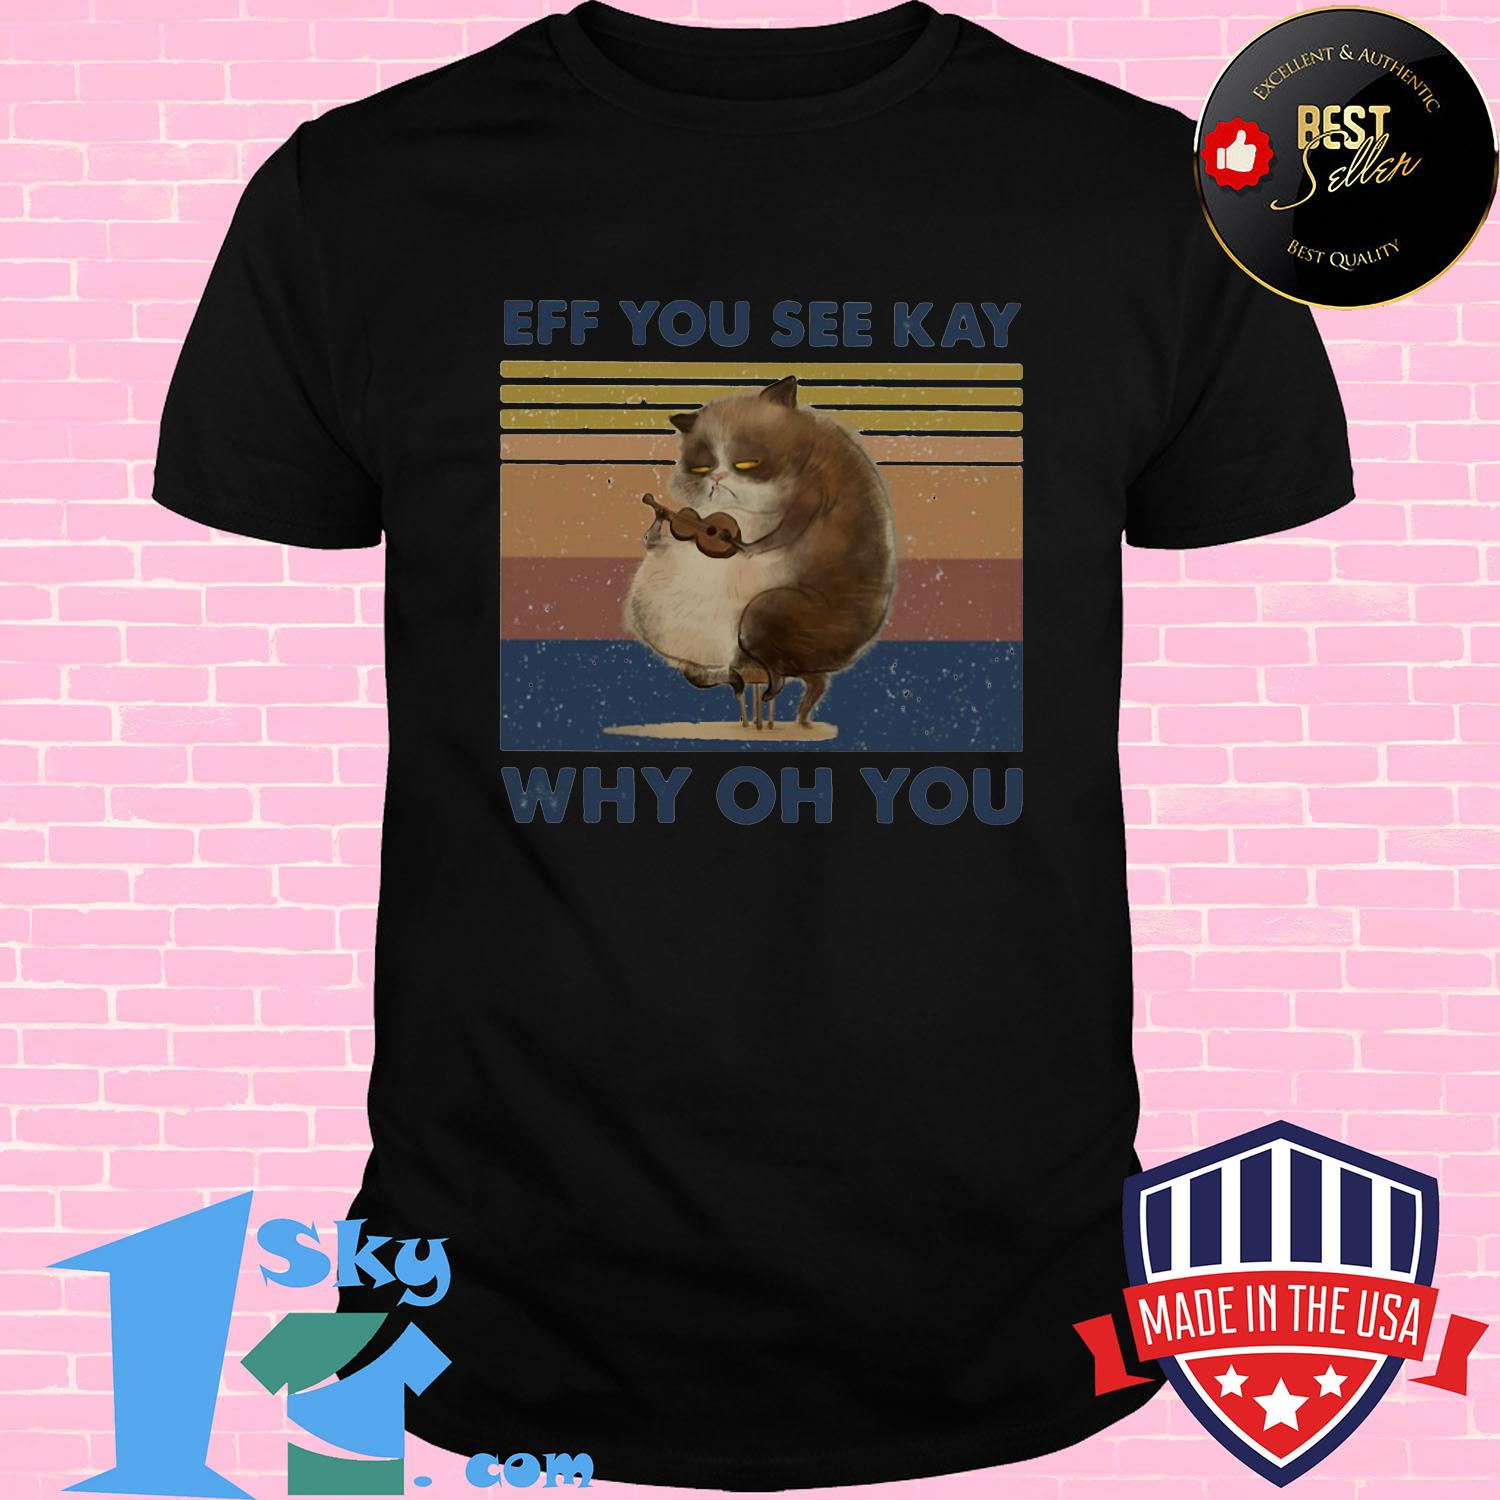 c3ecabad eff you see kay why oh you cat vintage shirt unisex shirt - Shop trending - We offer all trend shirts - 1SkyTee